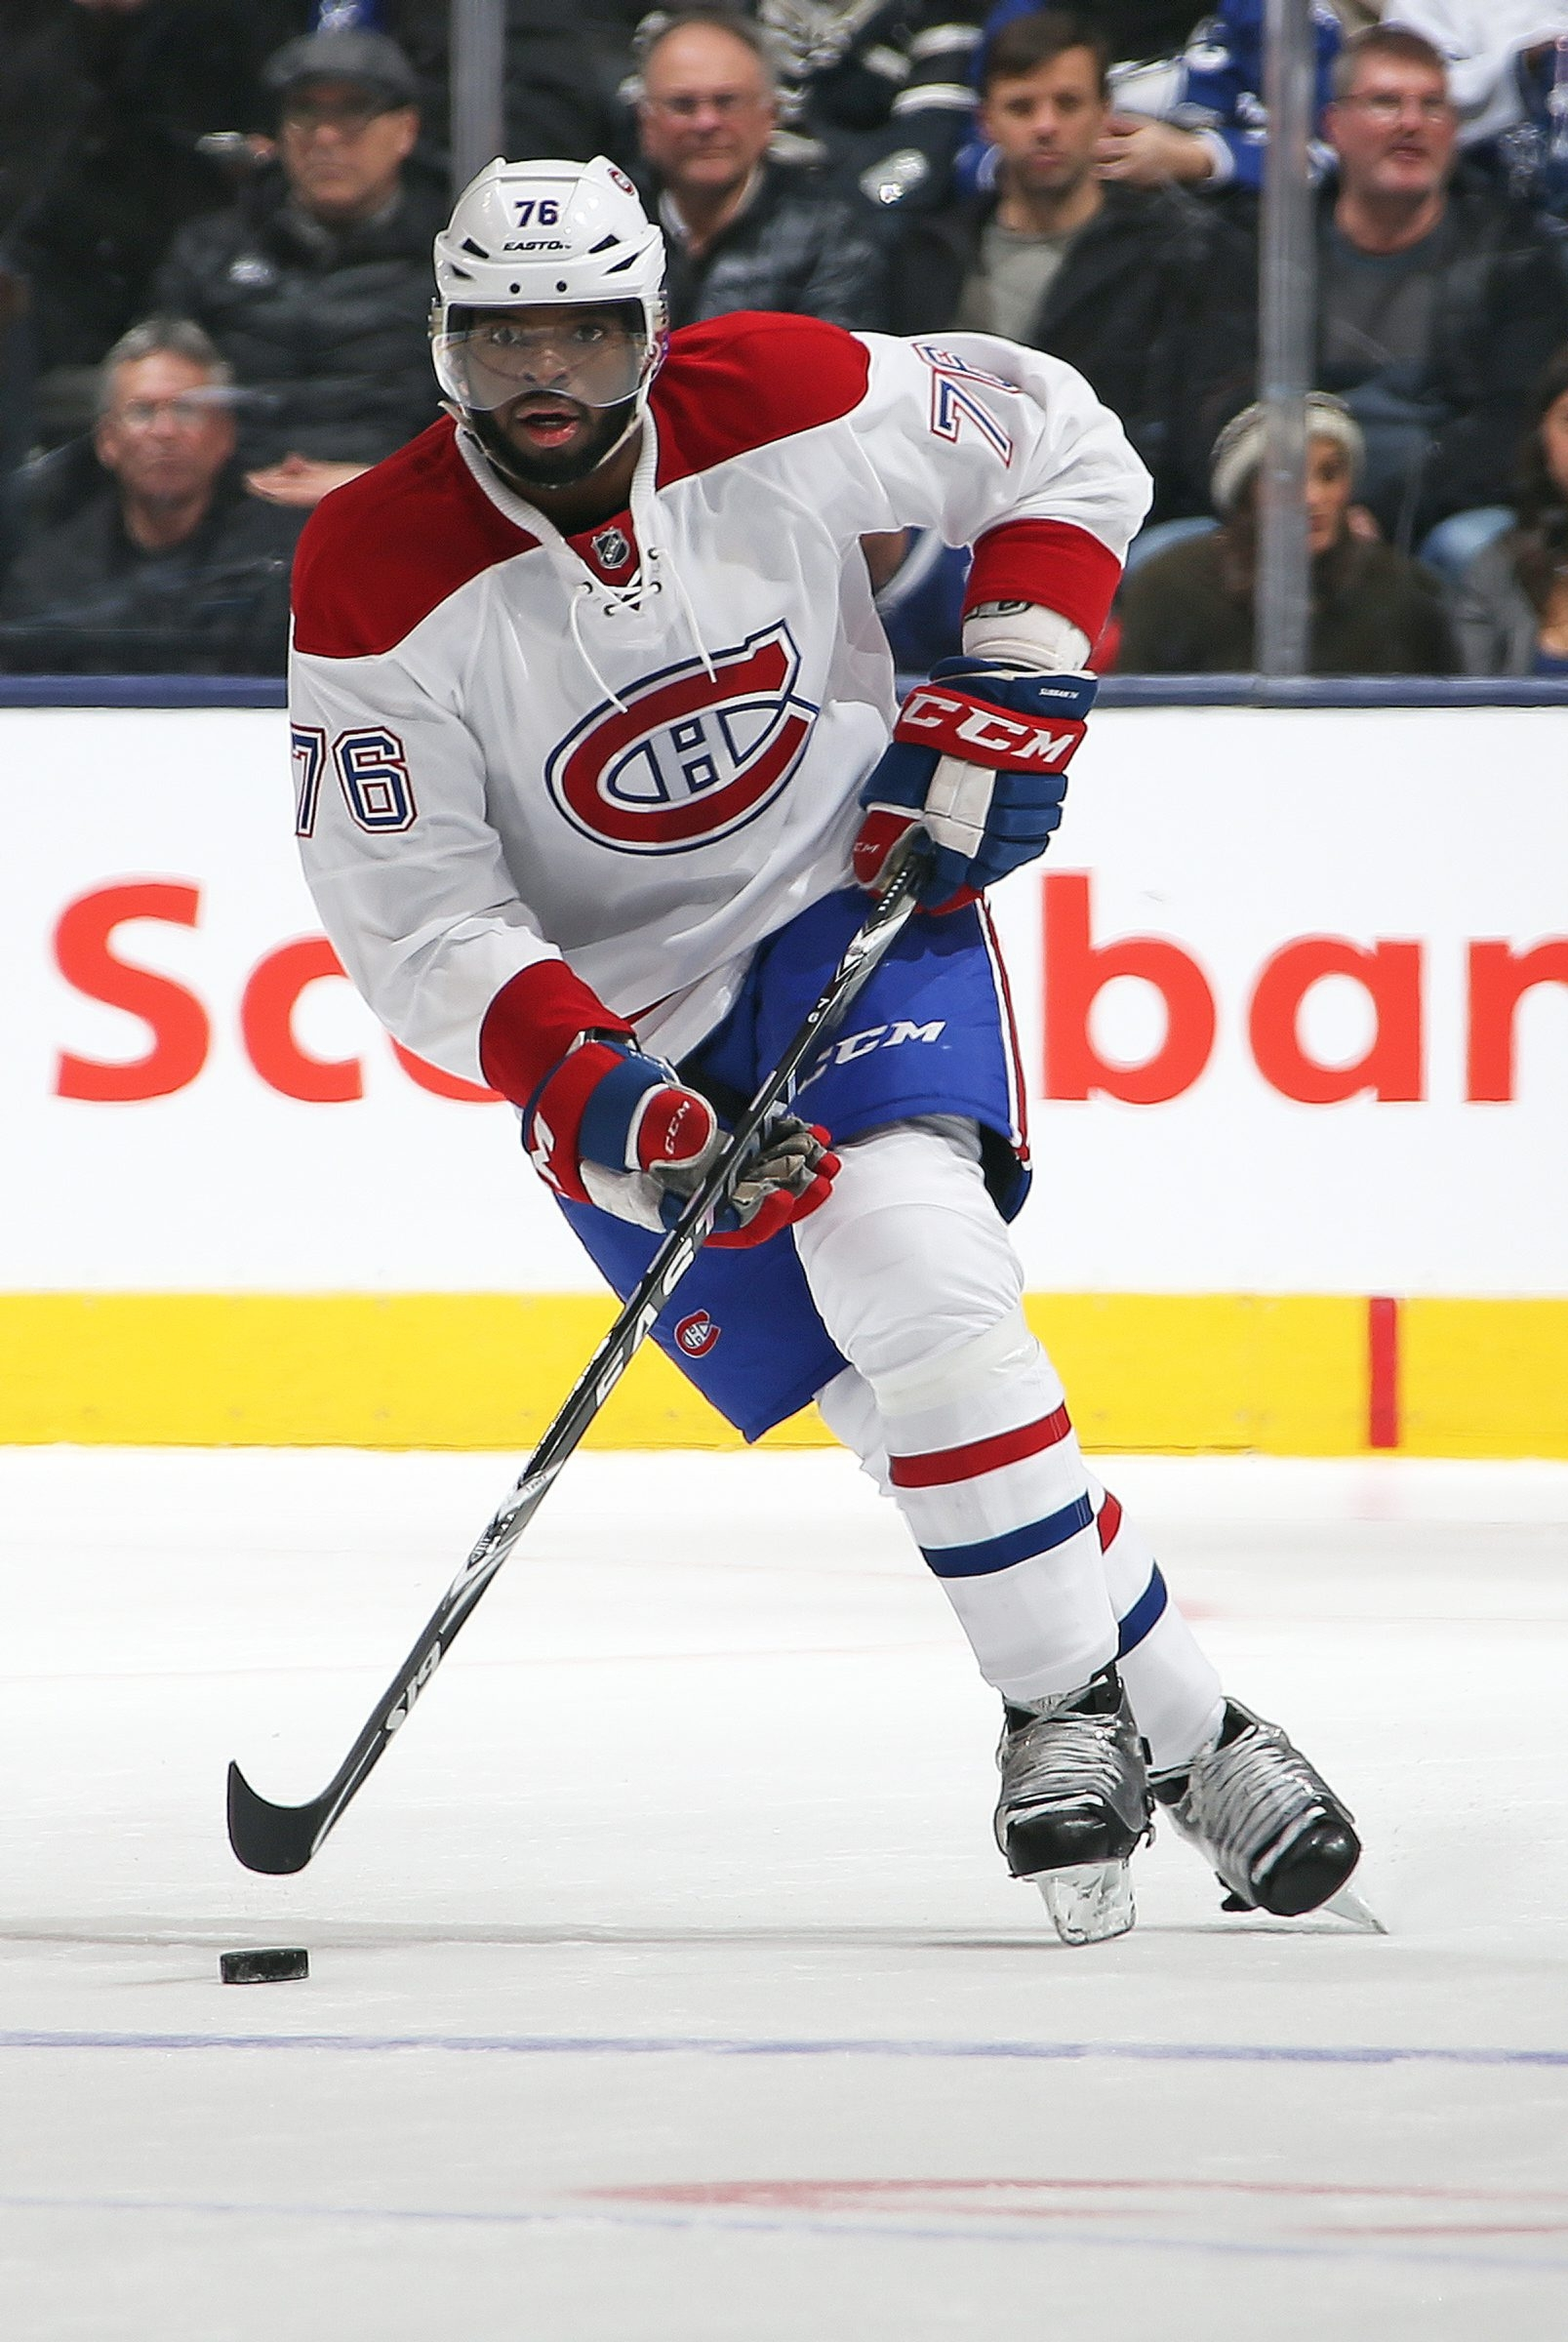 Montreal's P.K. Subban is the team's brightest star, but was wrongly singled out by coach Michel Therrien for a mistake in a recent game.